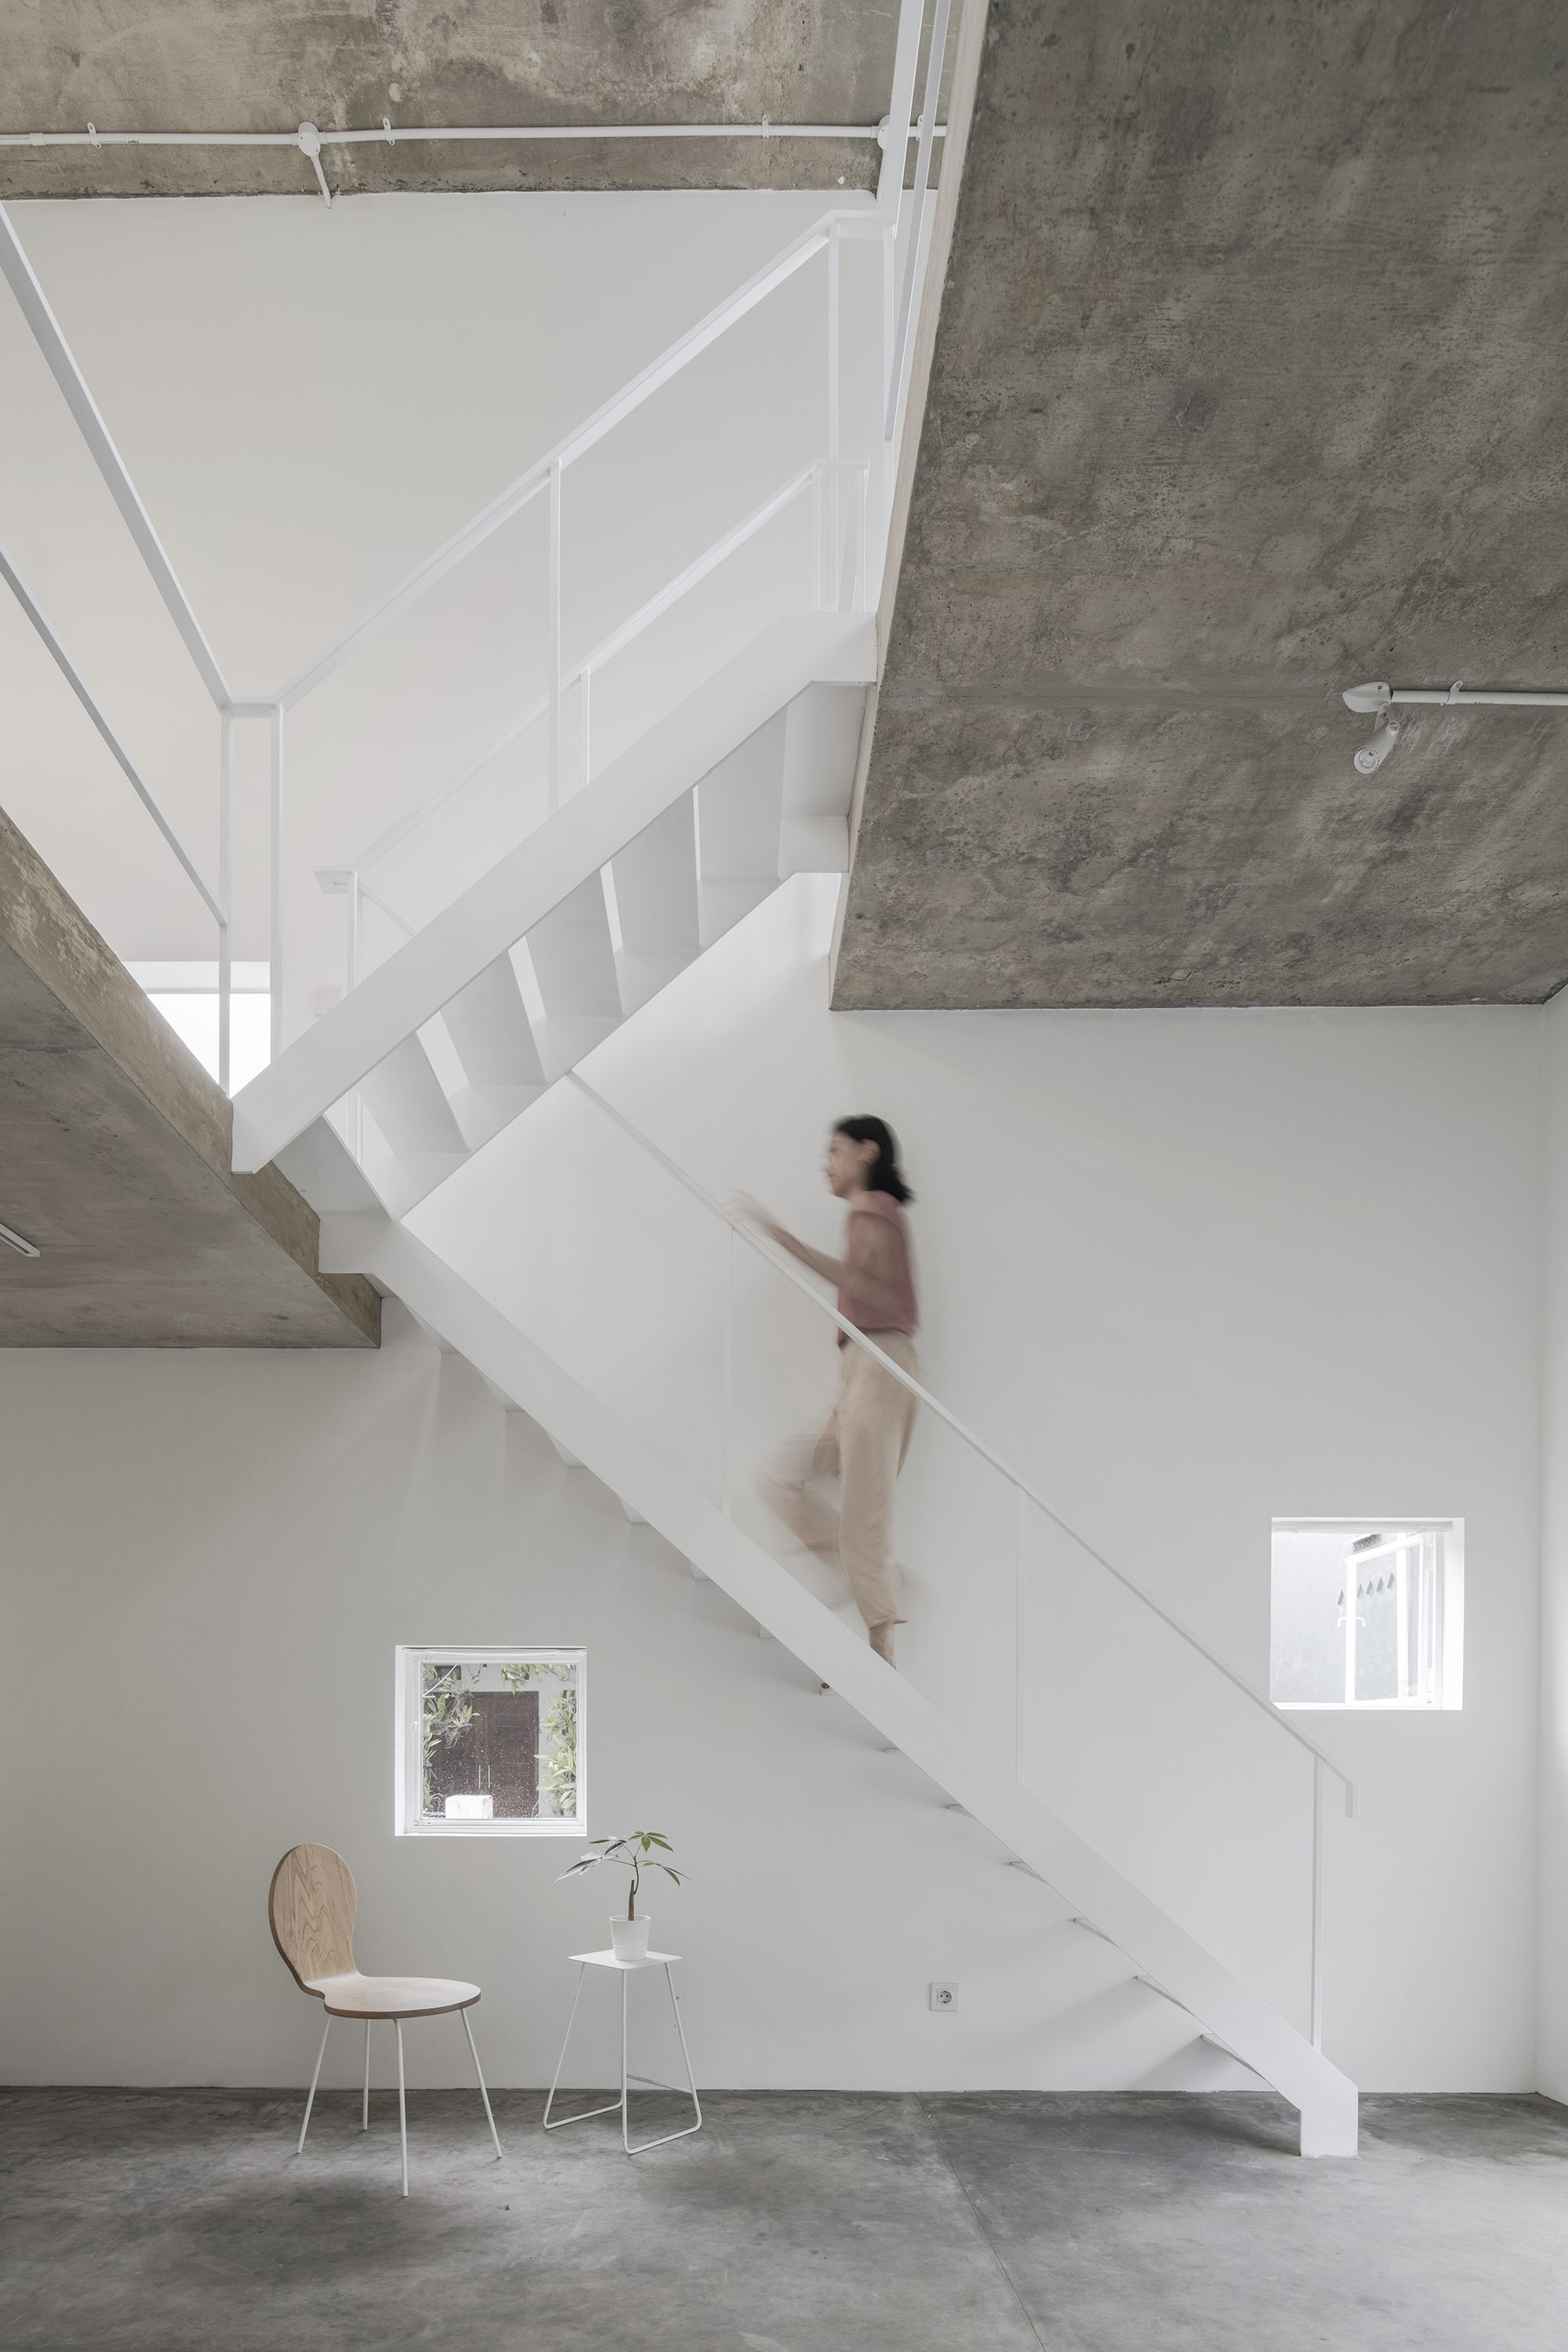 In bandung indonesia   third largest city local firm dua studio has designed the   house  small home that explores living large an area defined also designs without walls interior rh pinterest